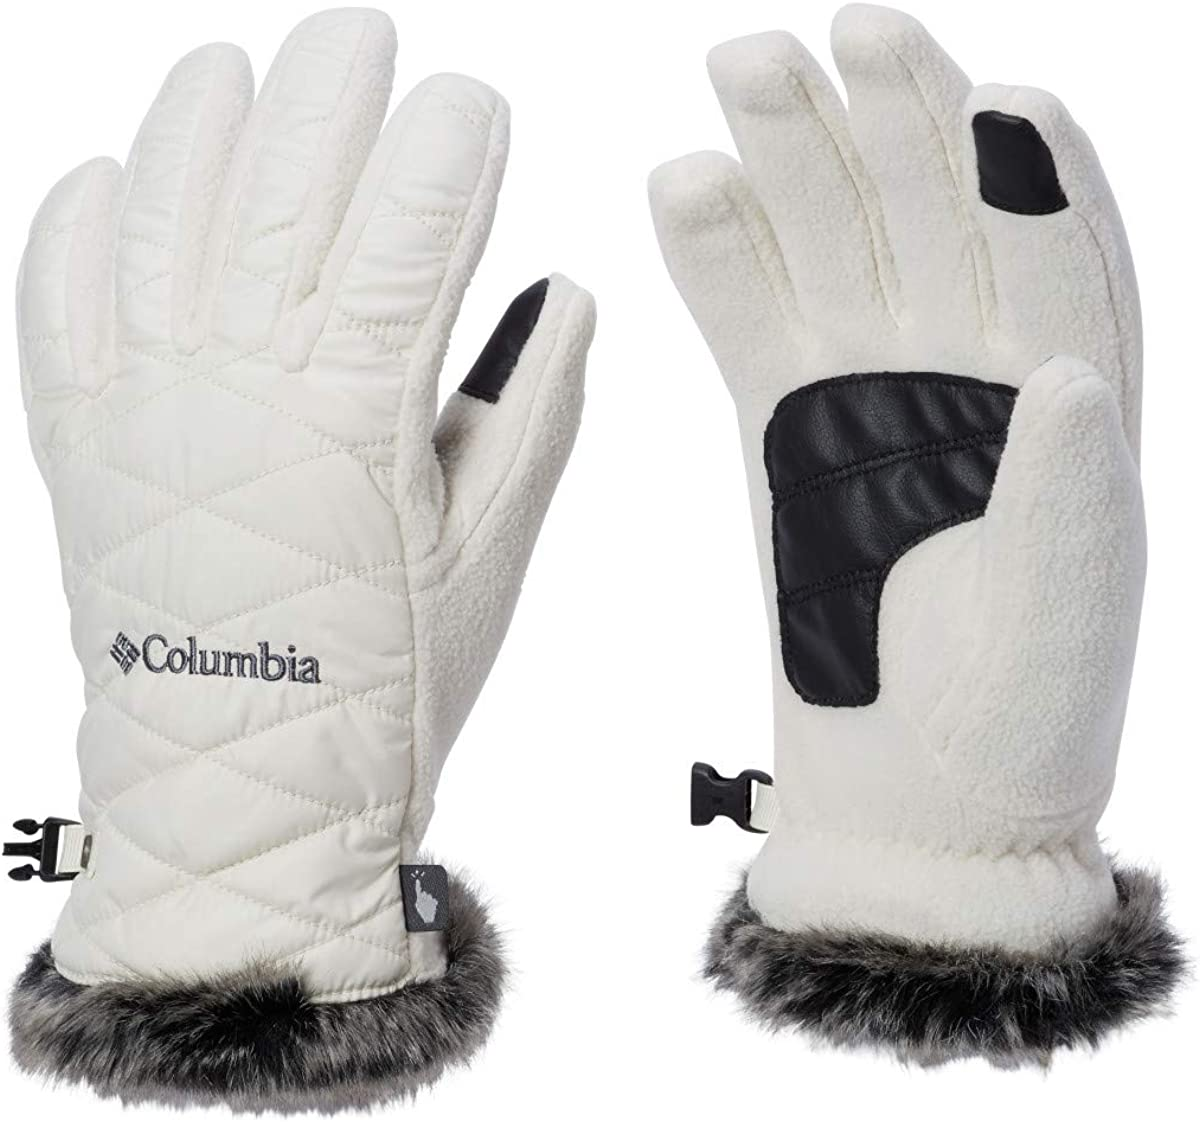 Columbia womens Directly Limited time cheap sale managed store W Glove Heavenly